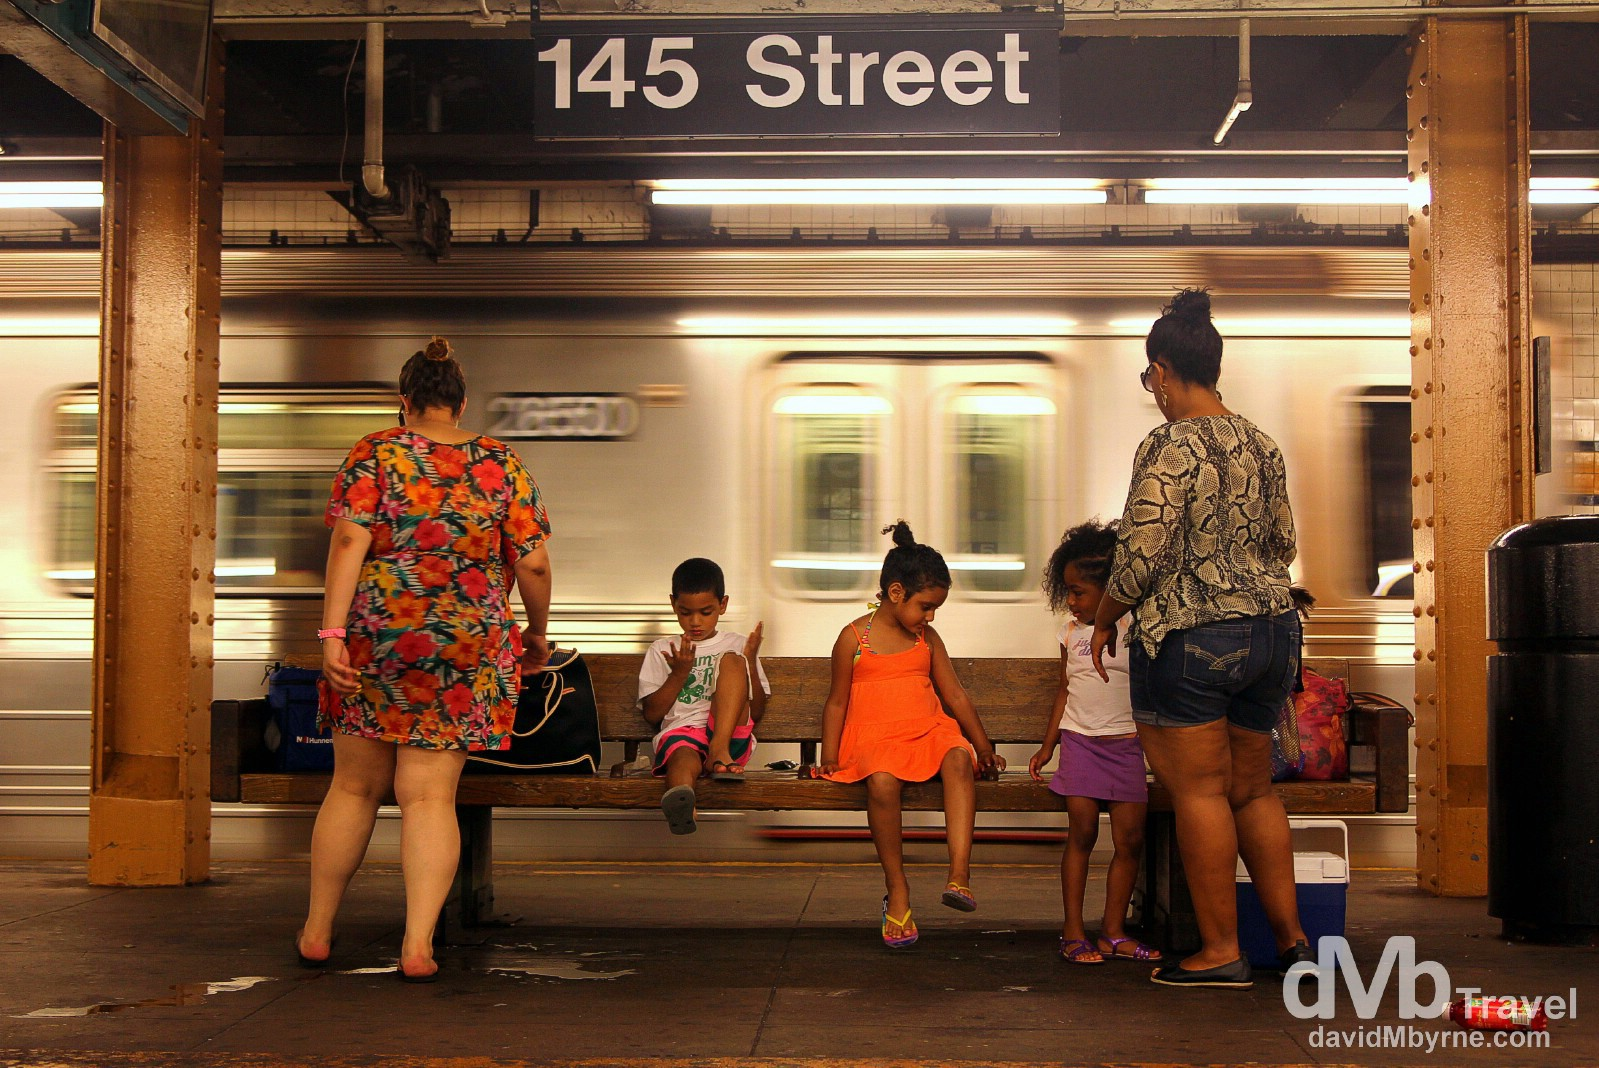 On the platform of 145 Street subway station, Manhattan, New York. July 14th 2013.